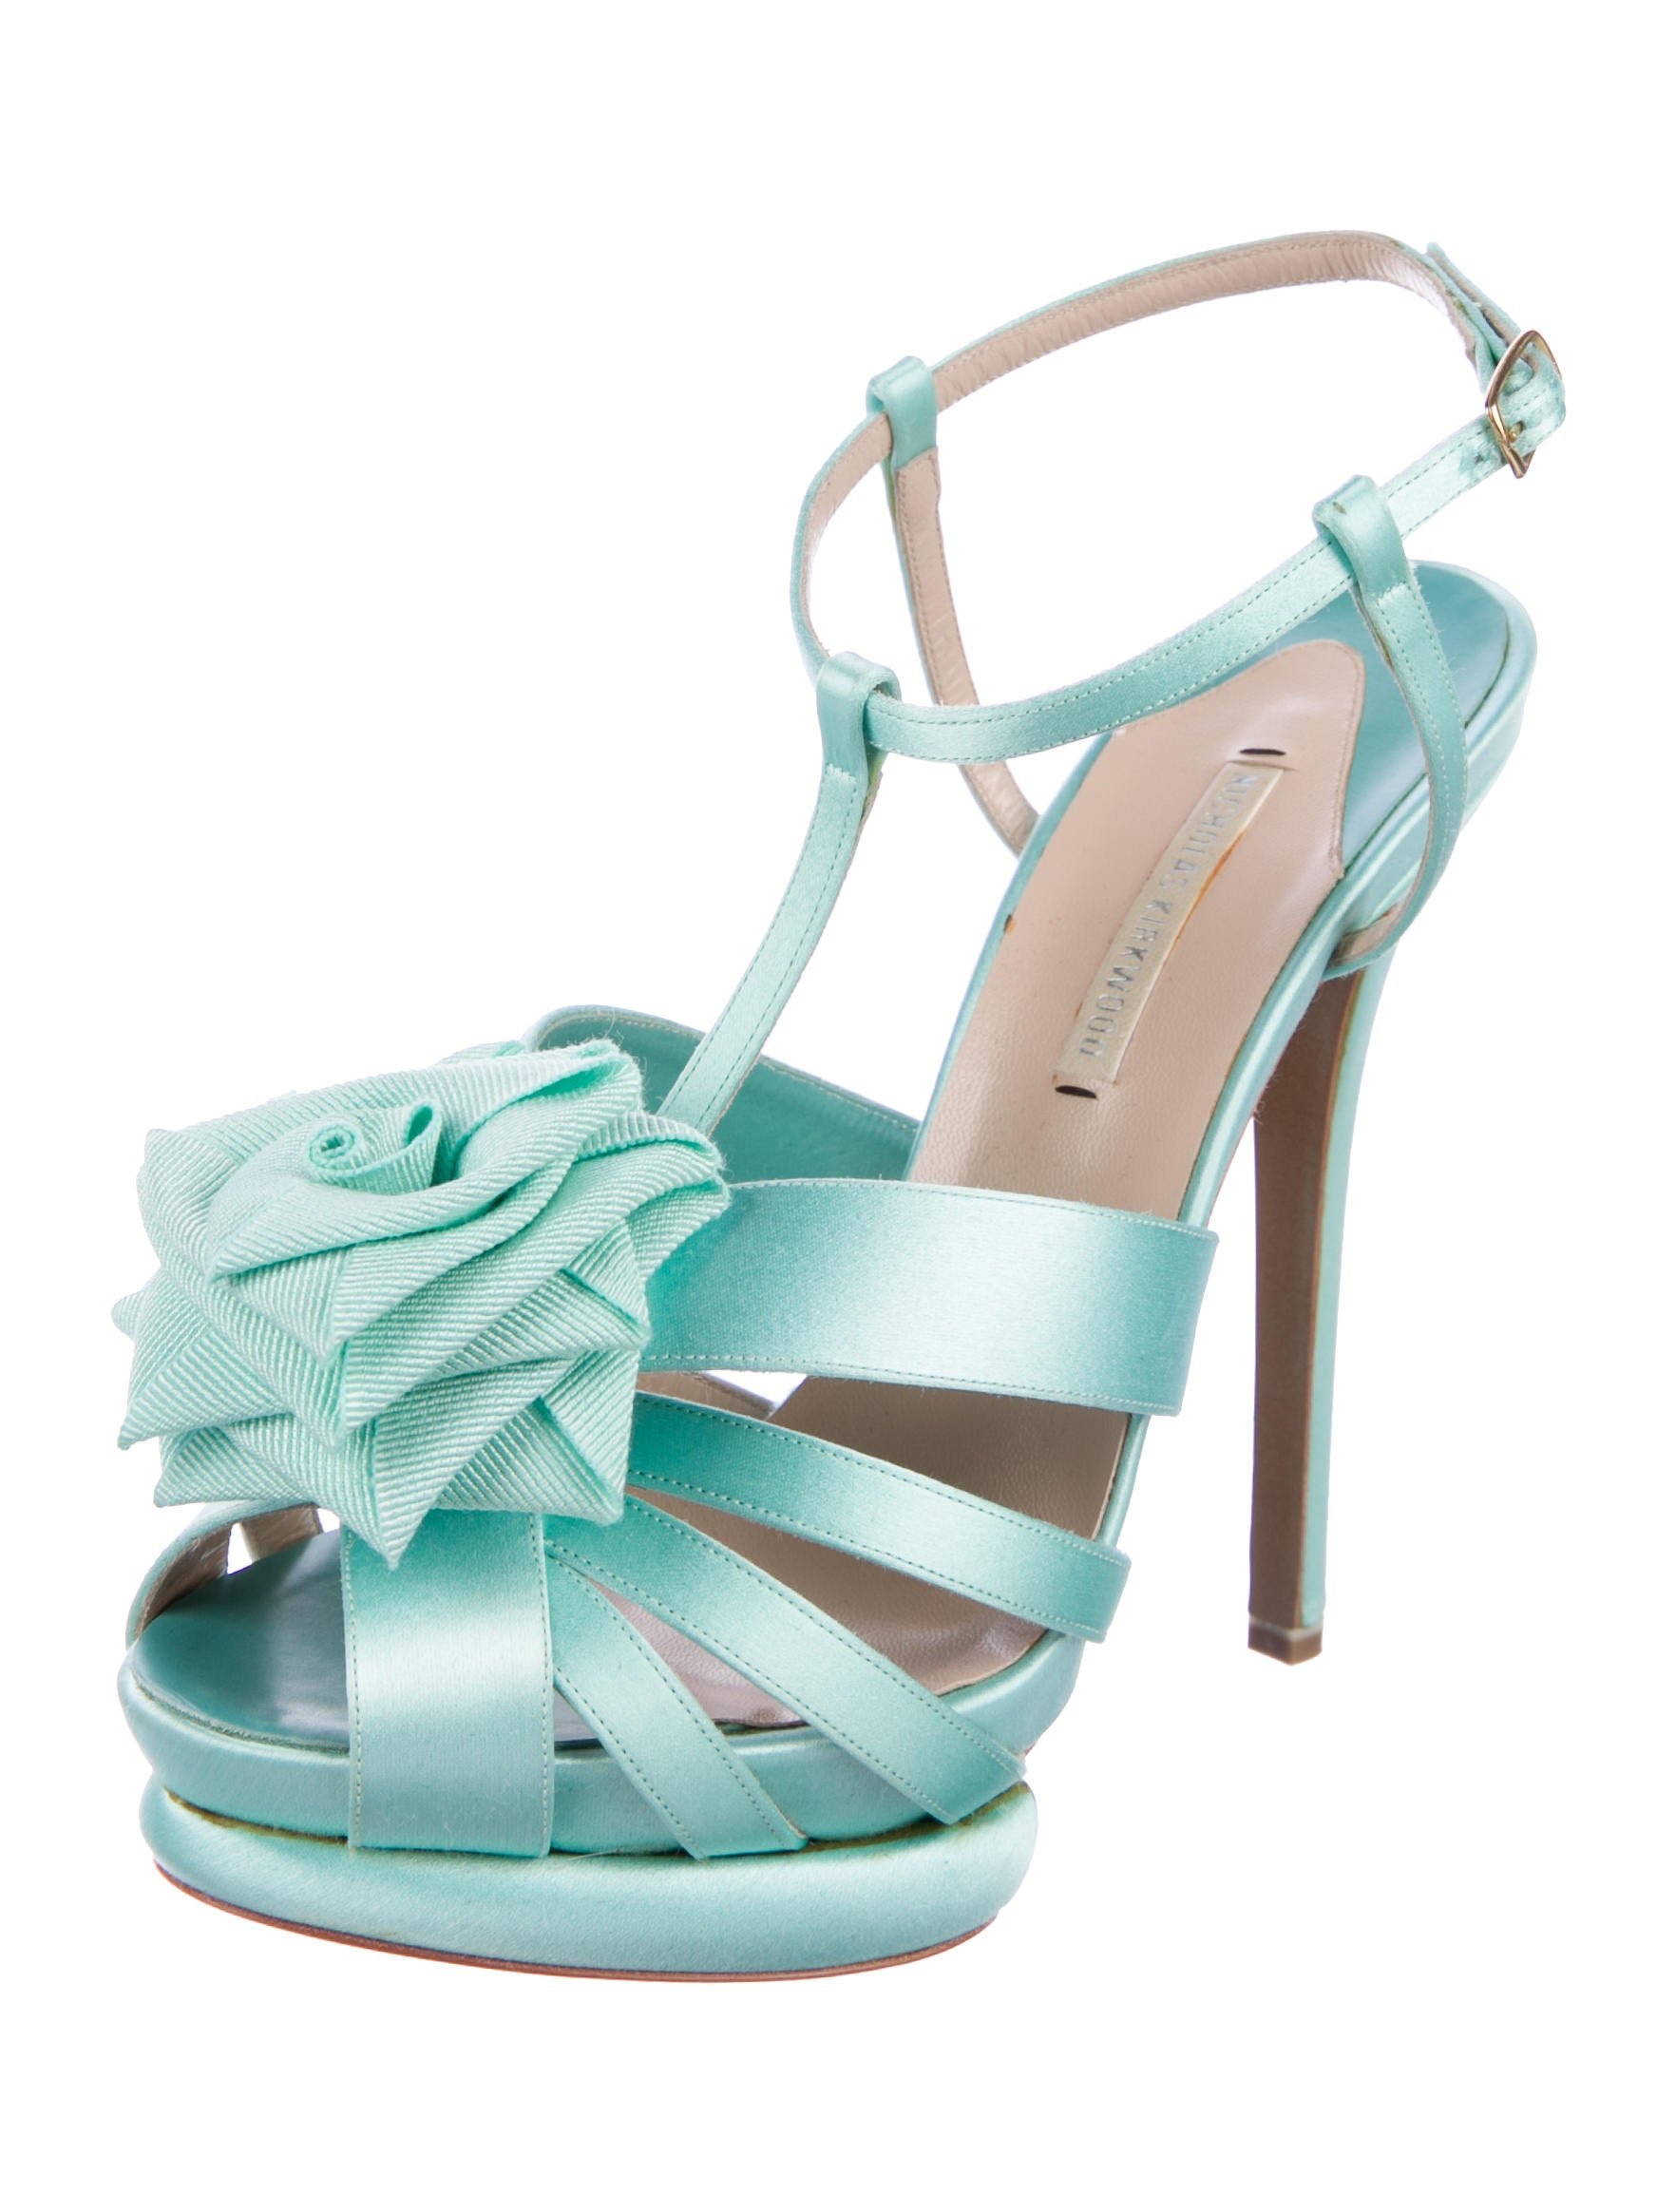 sale lowest price Nicholas Kirkwood Rosette Satin Sandals pay with visa sale online in China KZMCtgz